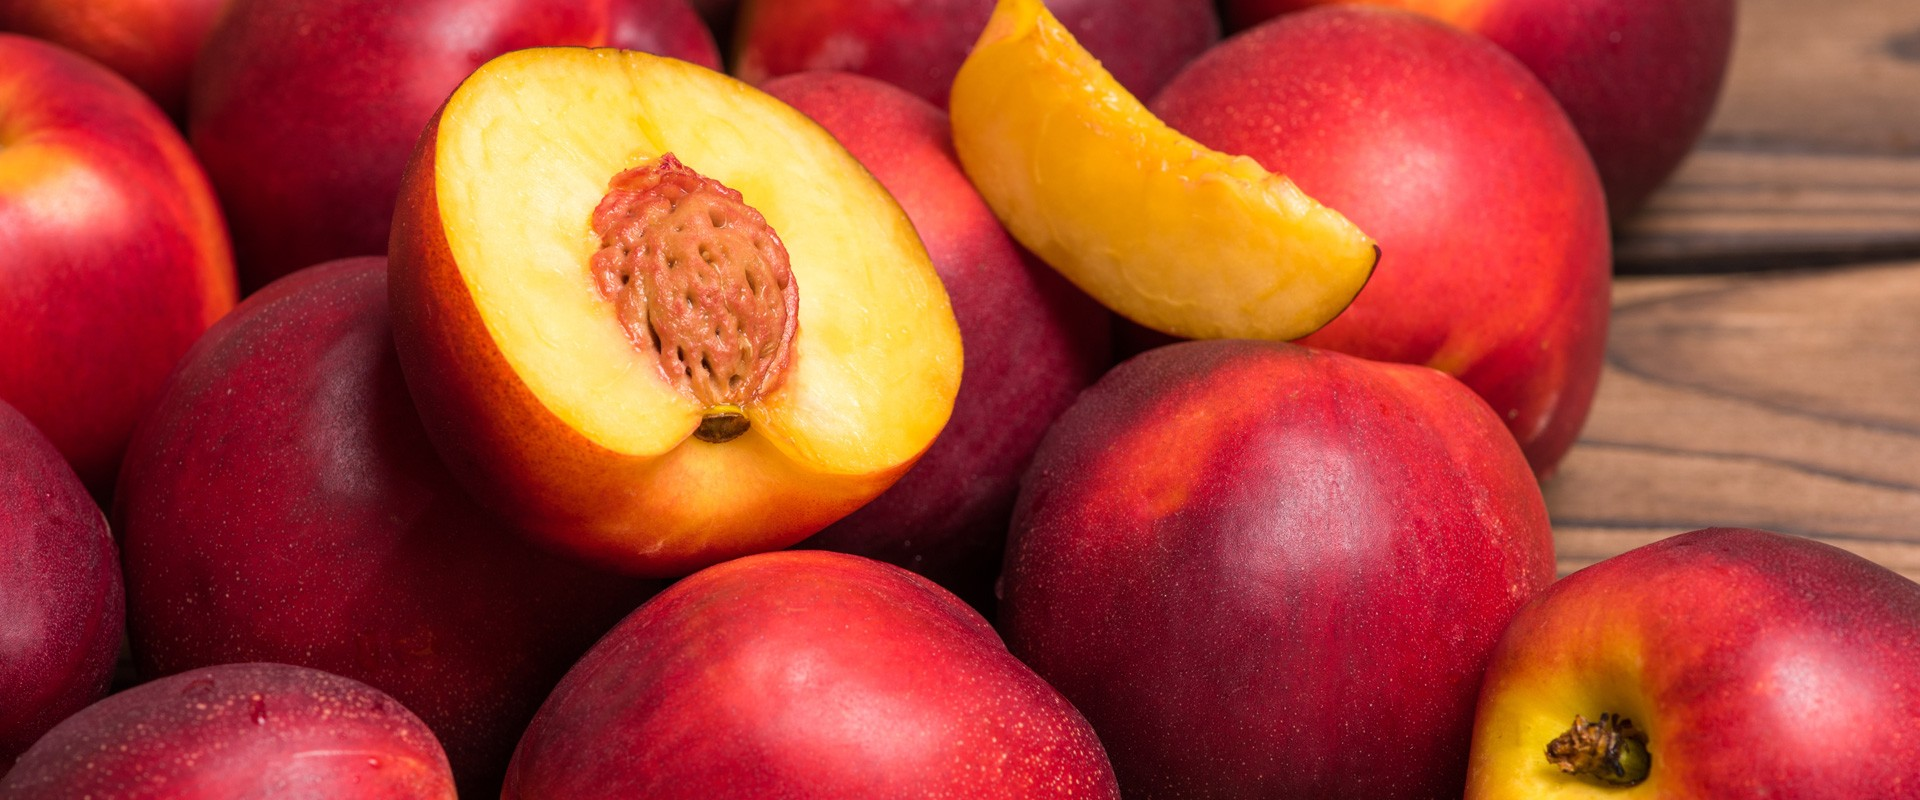 Nectarines-Product